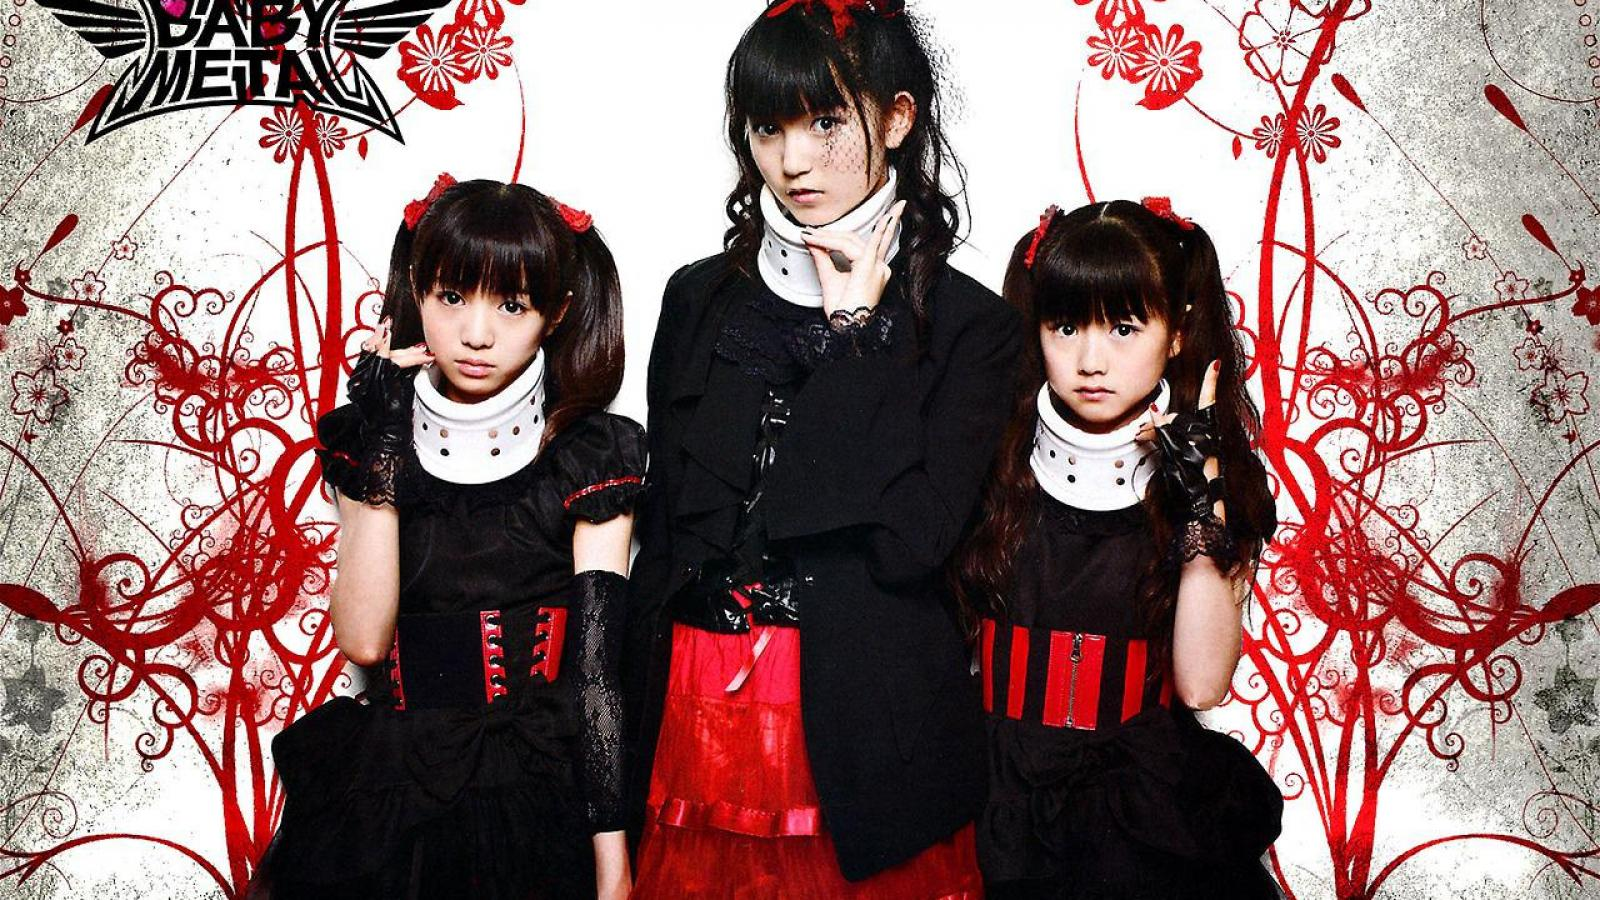 Moametal Wallpaper Cute Throw Up Your Fox Signs Here S Babymetal Morningtime